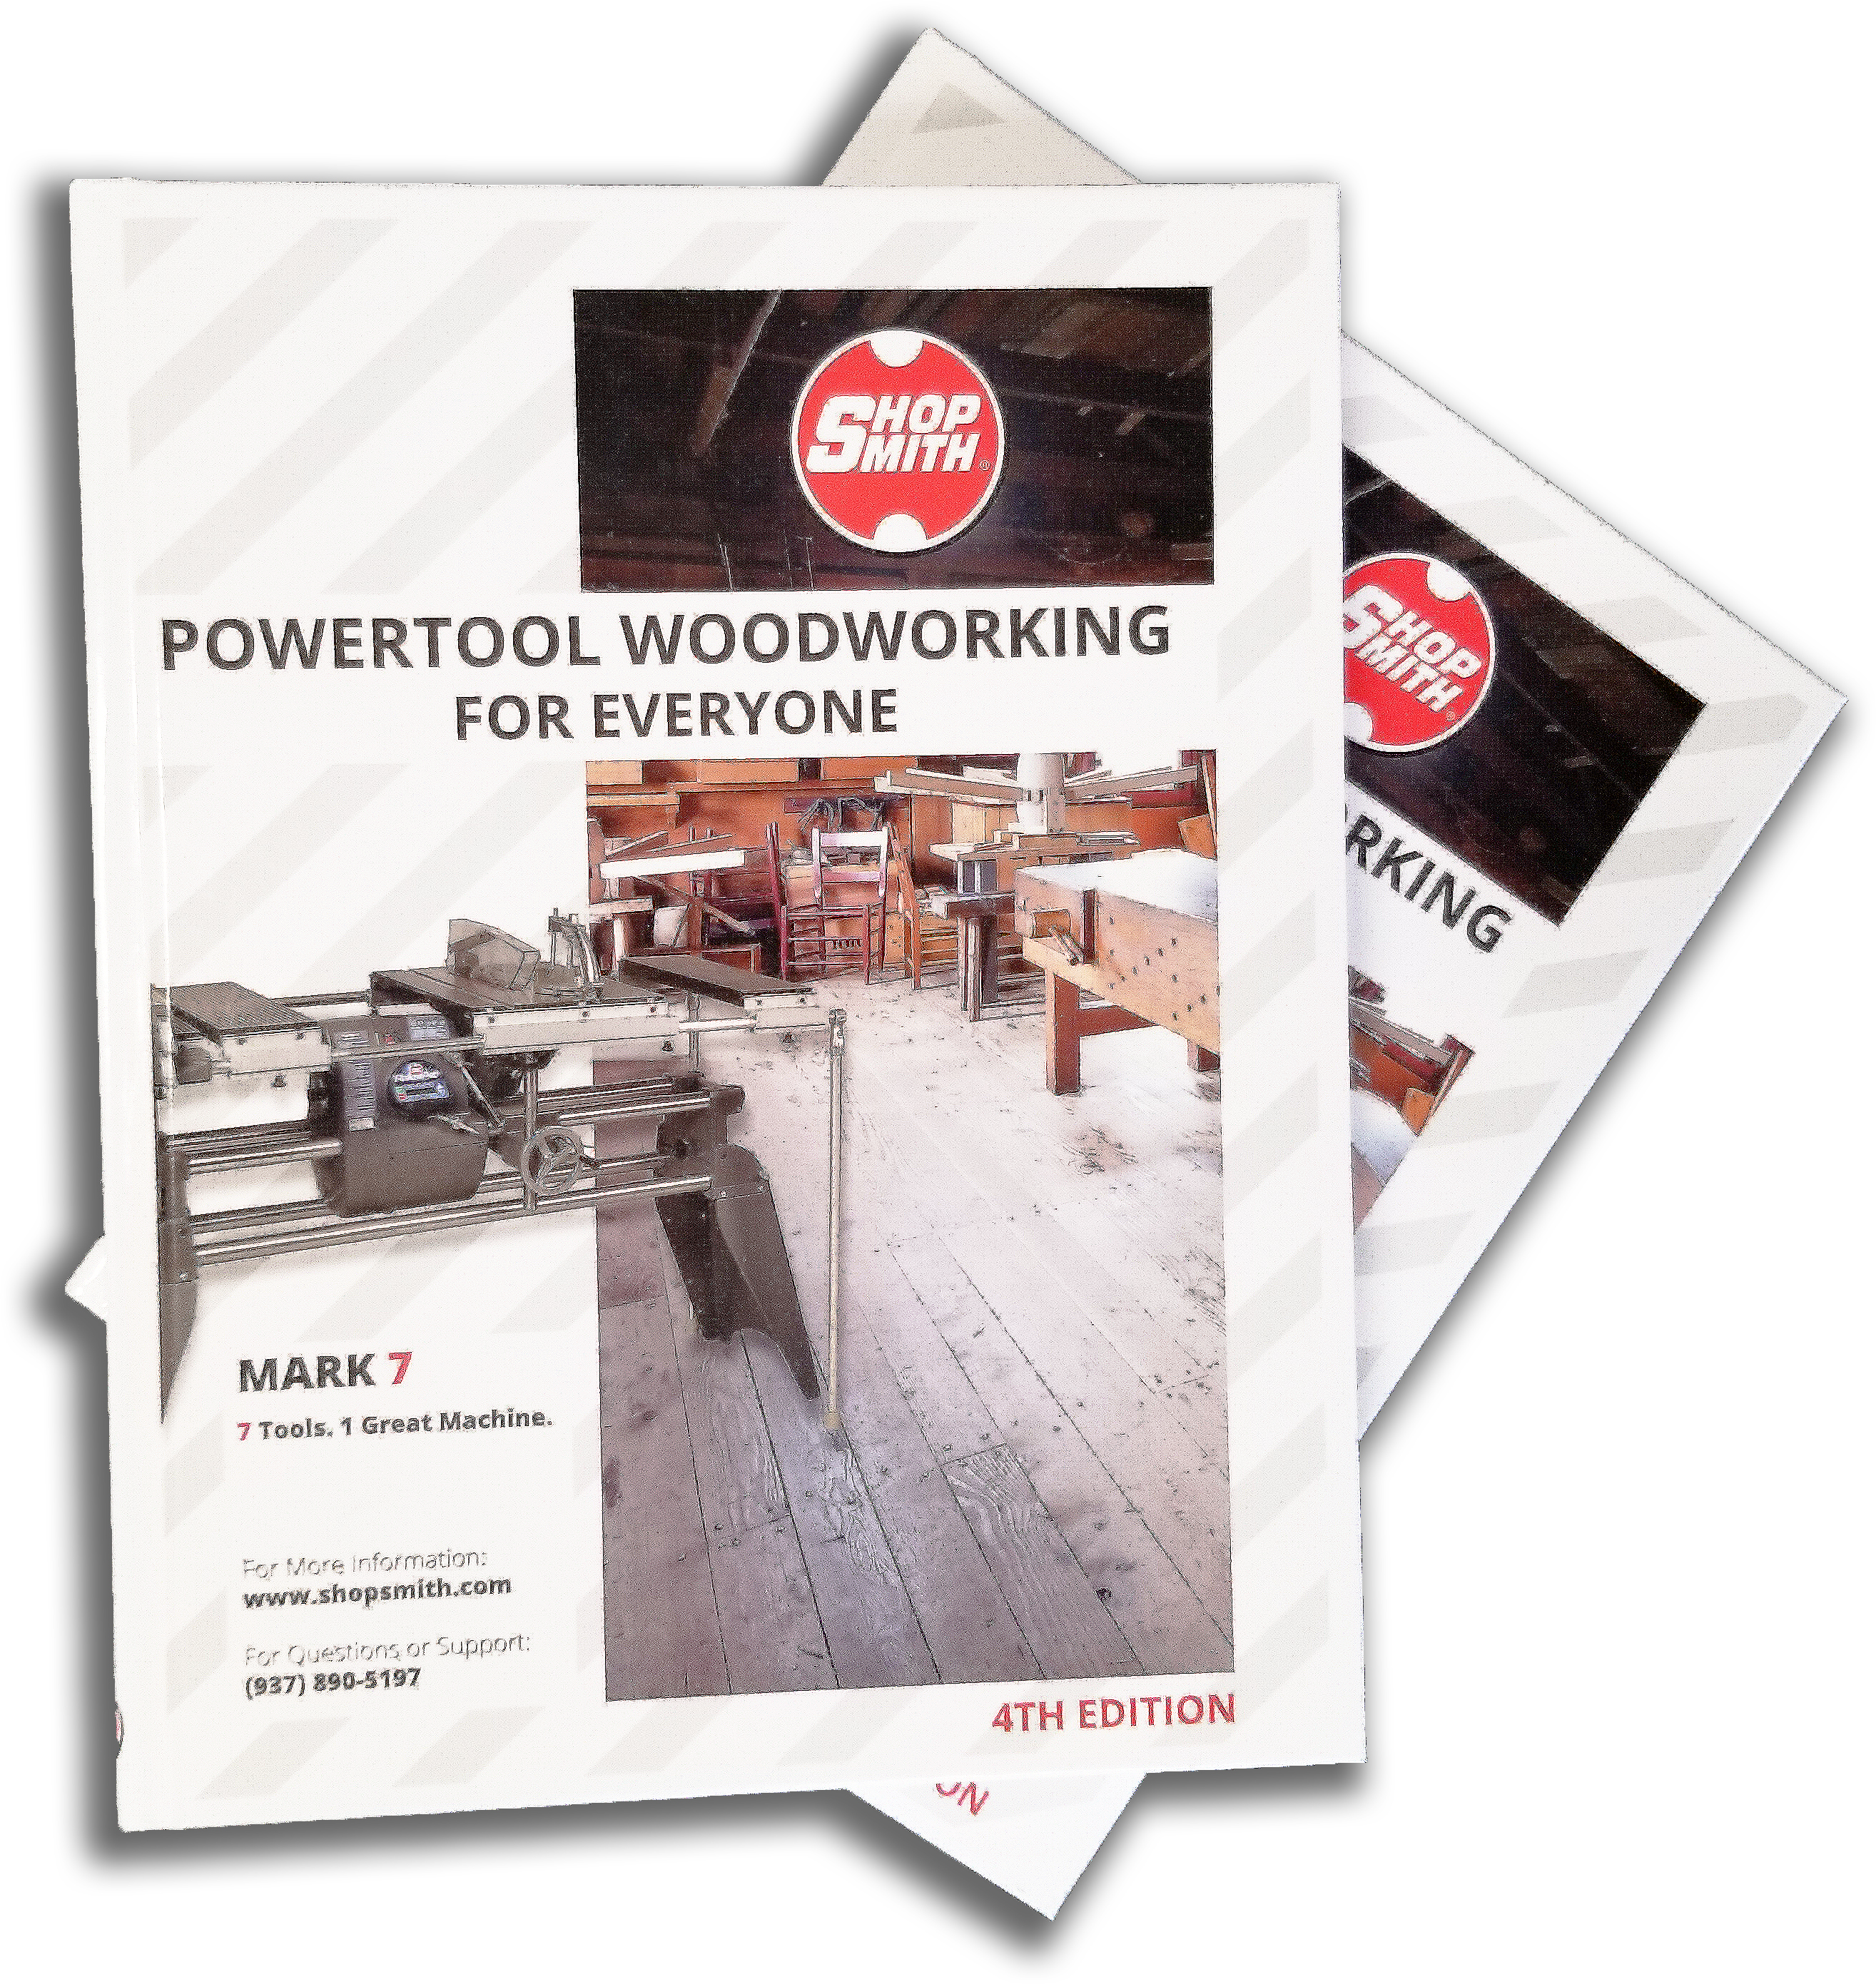 325-Page Powerhouse of Woodworking Knowledge